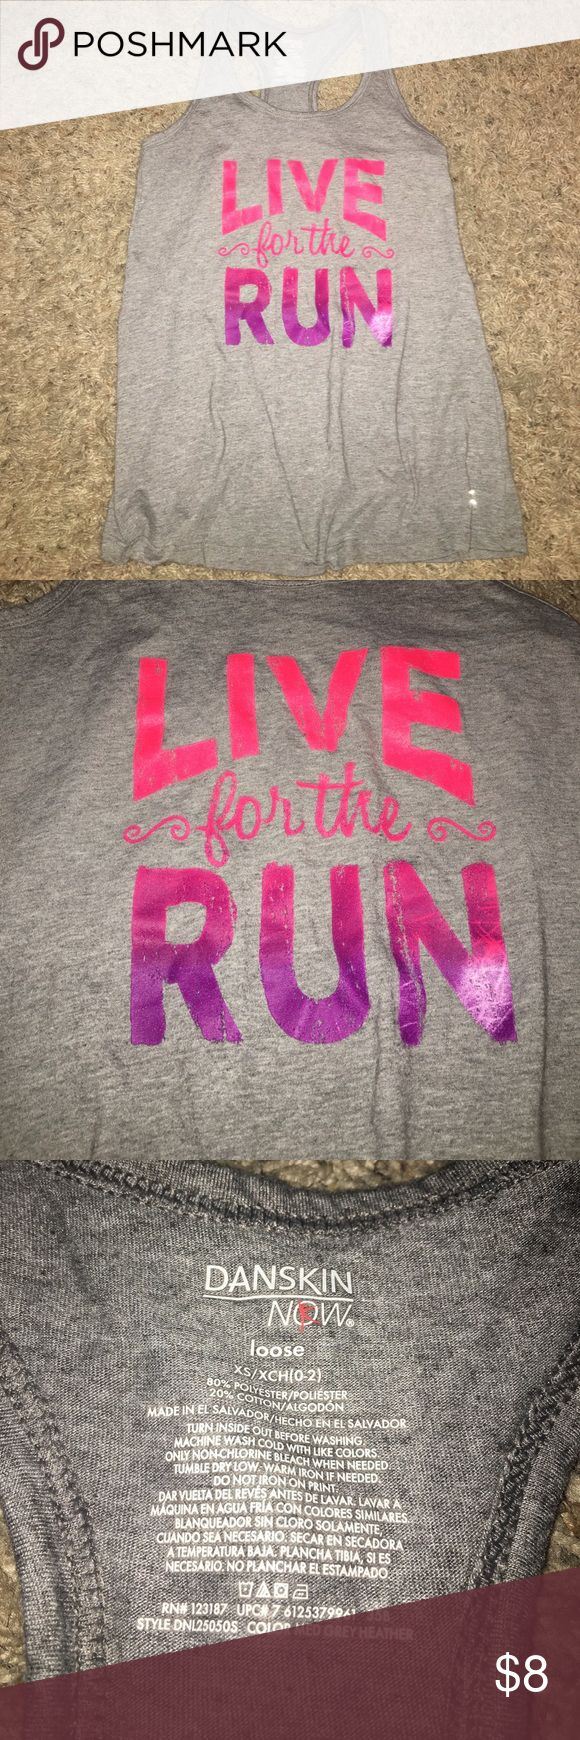 """NEW workout tank top New Danskin workout tank top """"Live for the run"""" fits loosely and is super soft! Danskin Now Tops Tank Tops"""